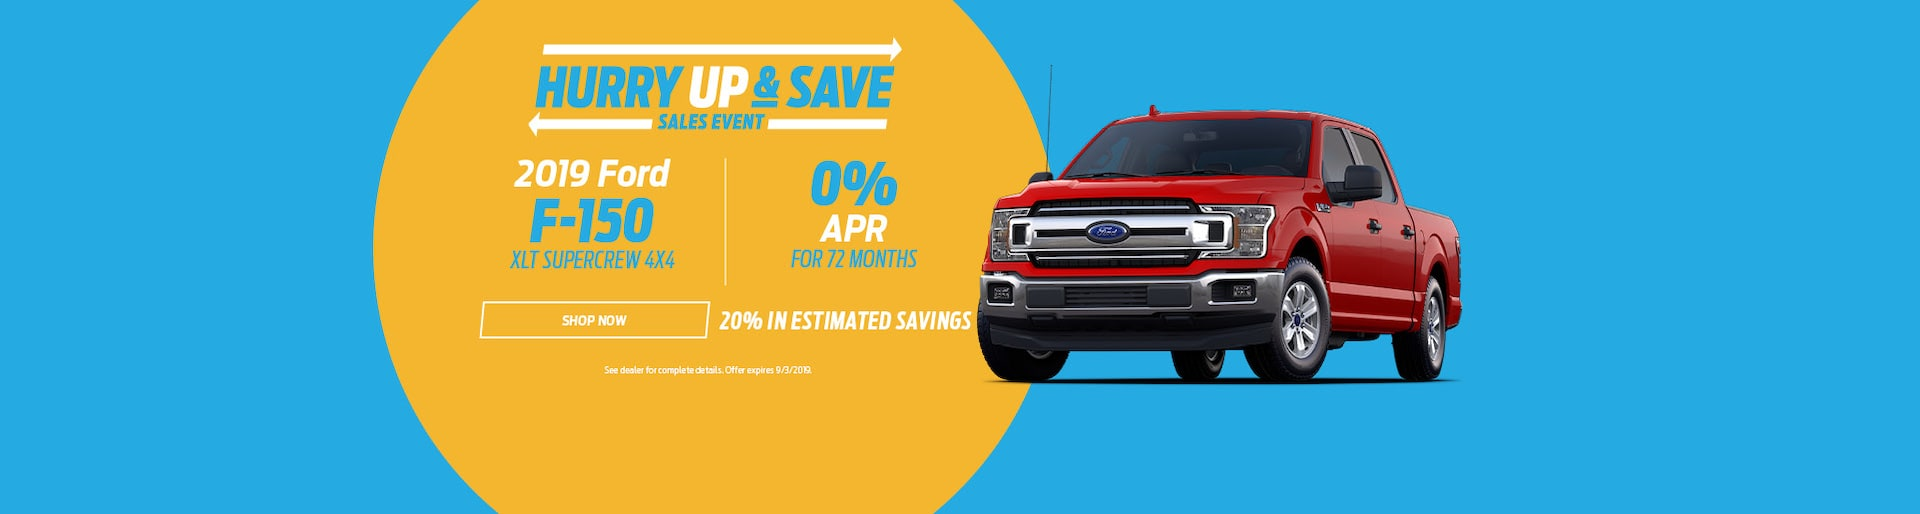 Ford Dealers In Ct >> Murphy Ford Ford Dealership In Chester Pa